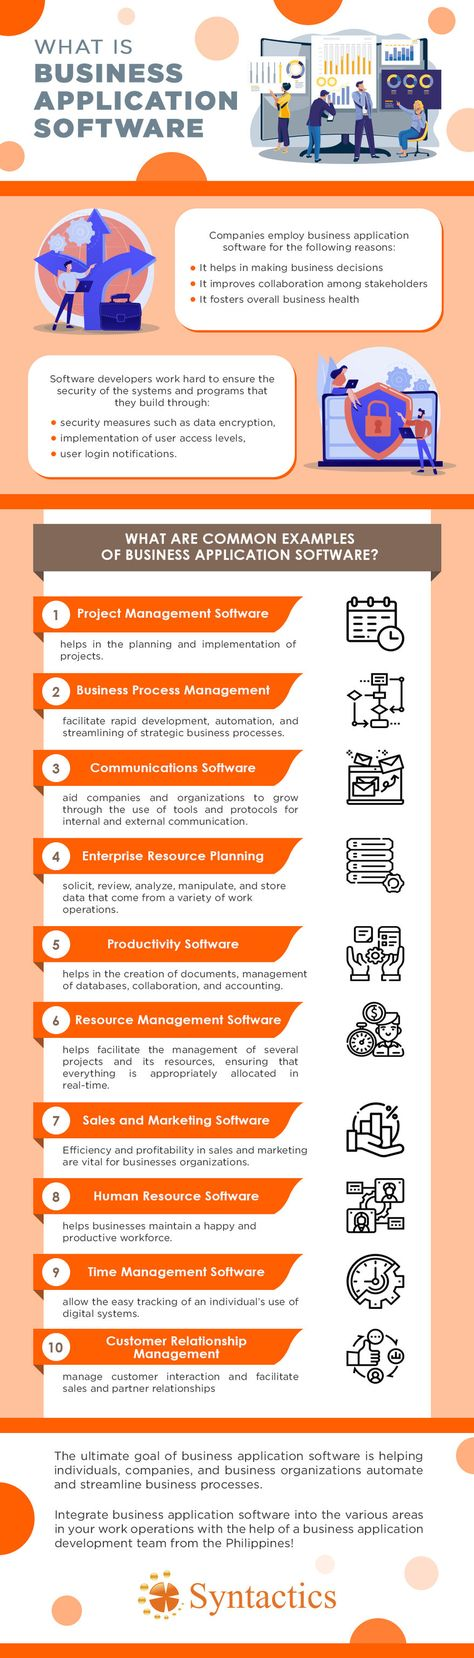 Business Application Software: What Is It? - Syntactics, Inc.